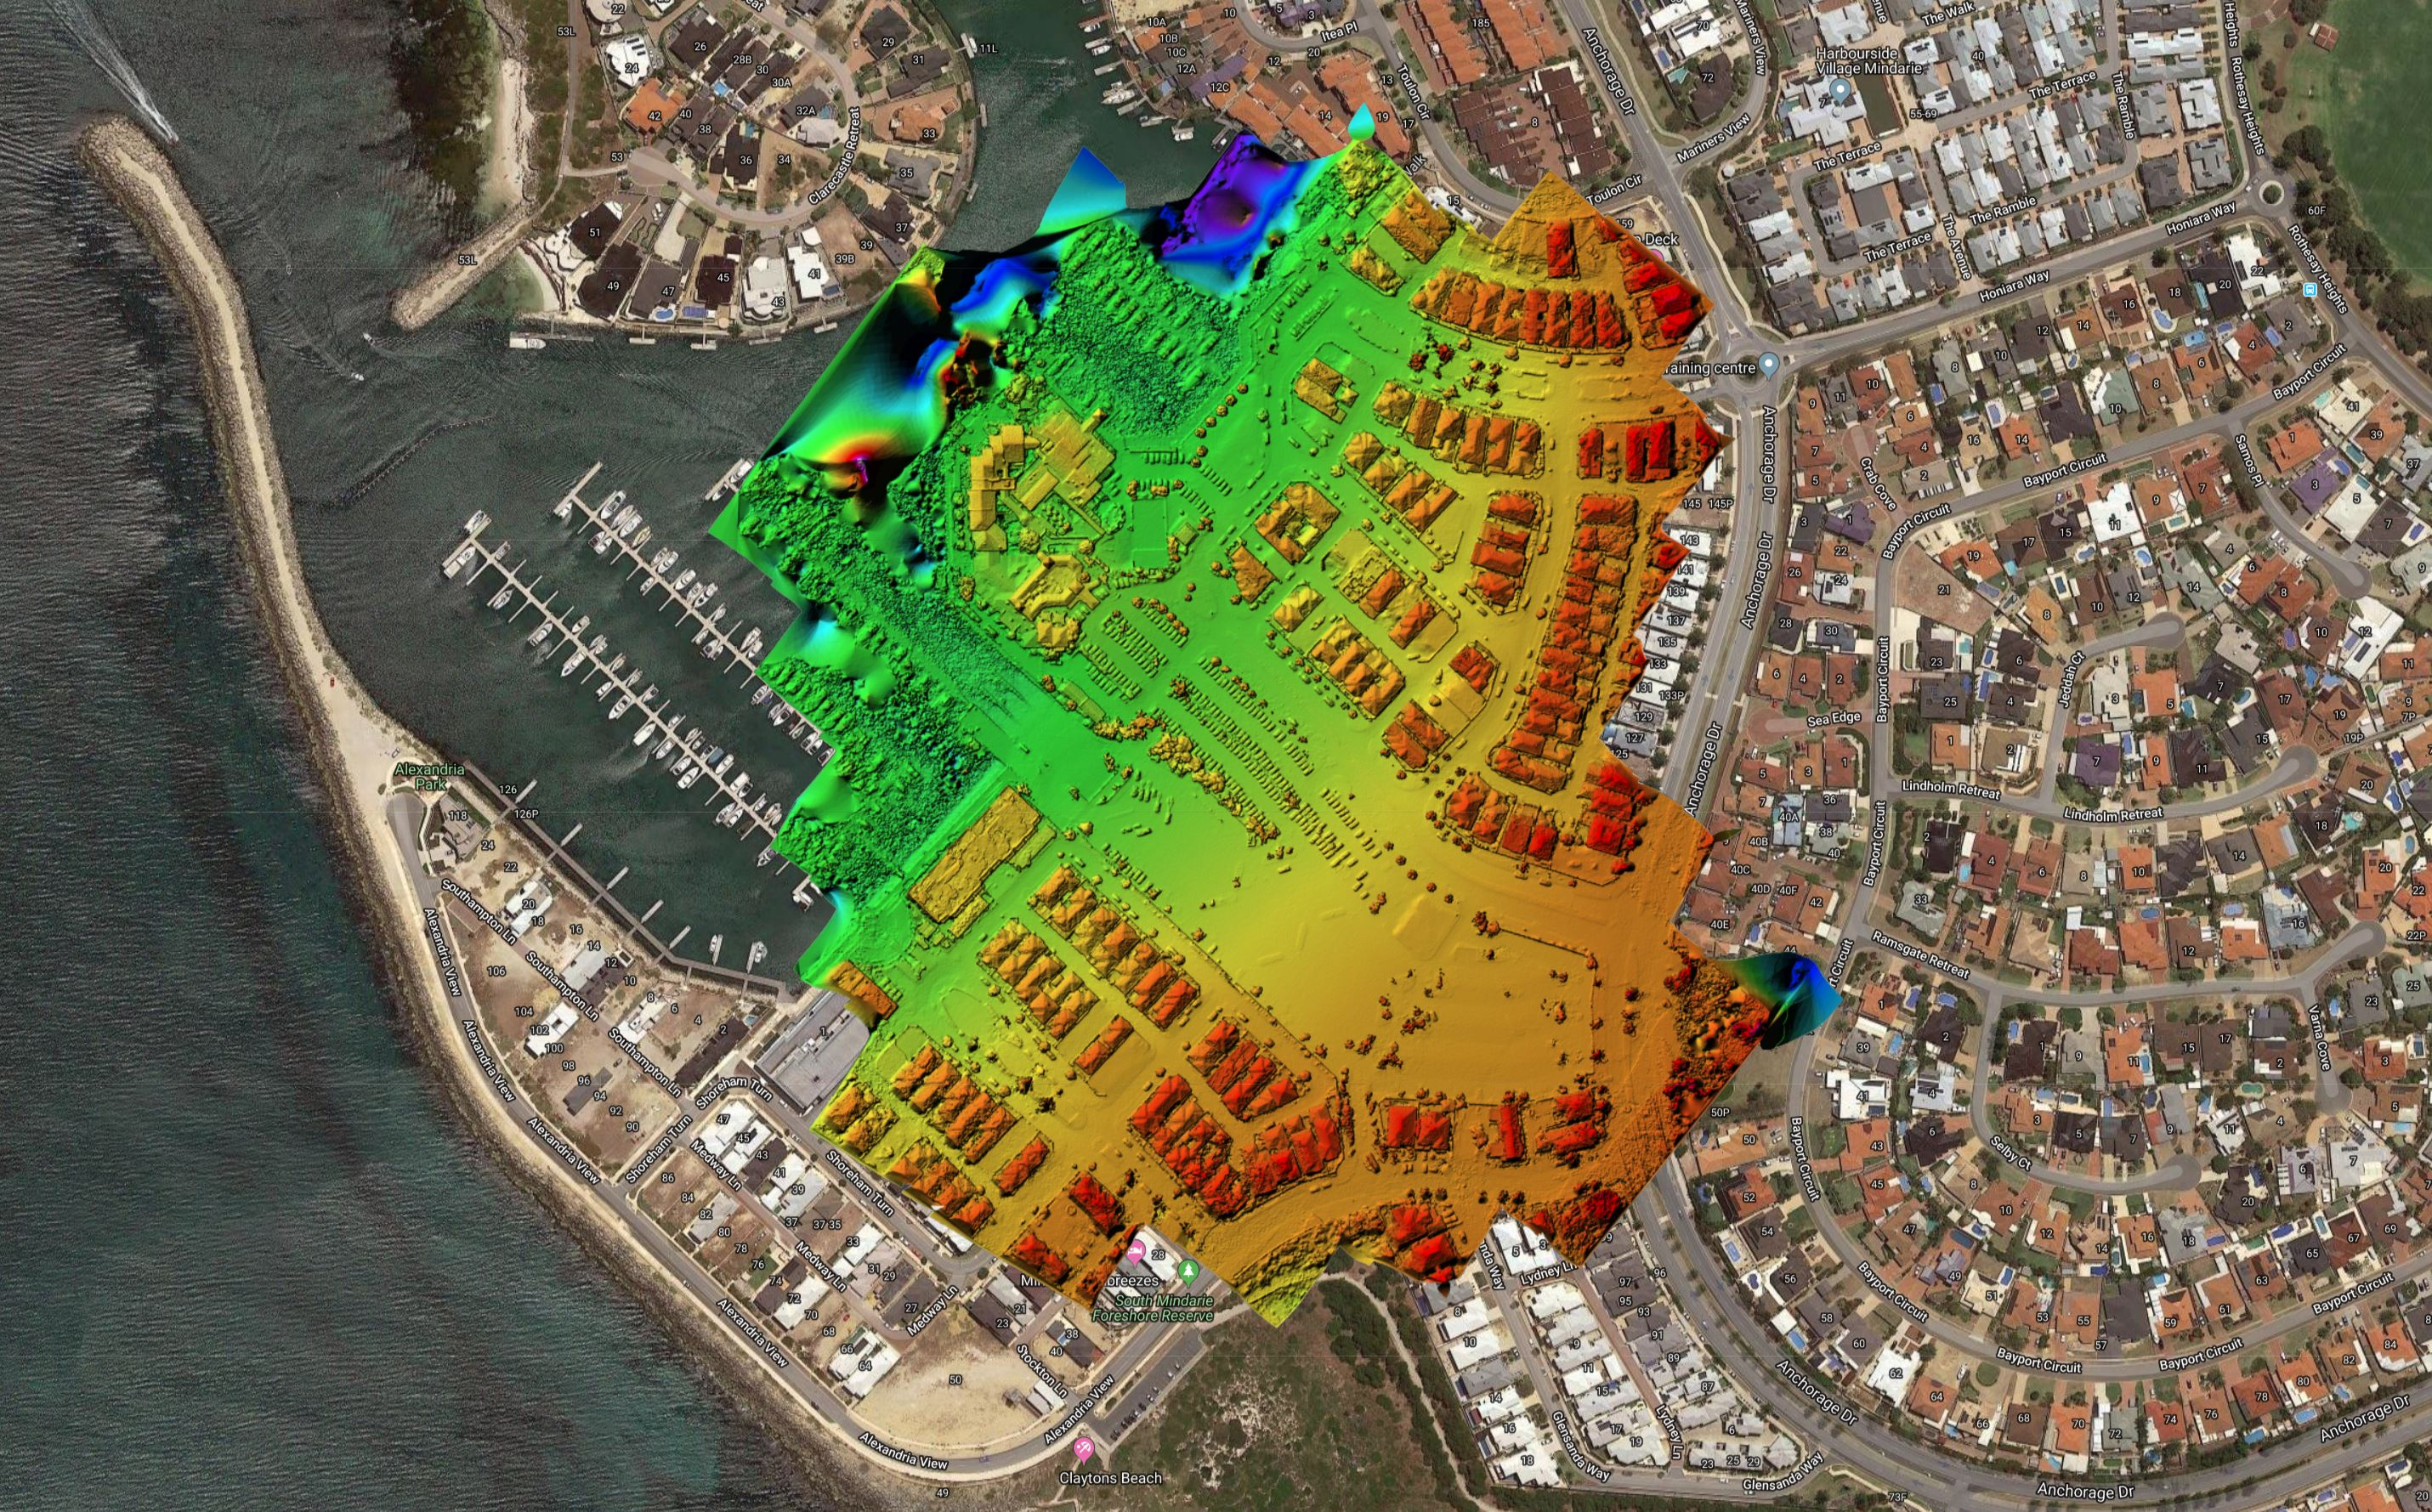 elevation-profile-mapping-2d-drone-image-western-australia-perthJPG